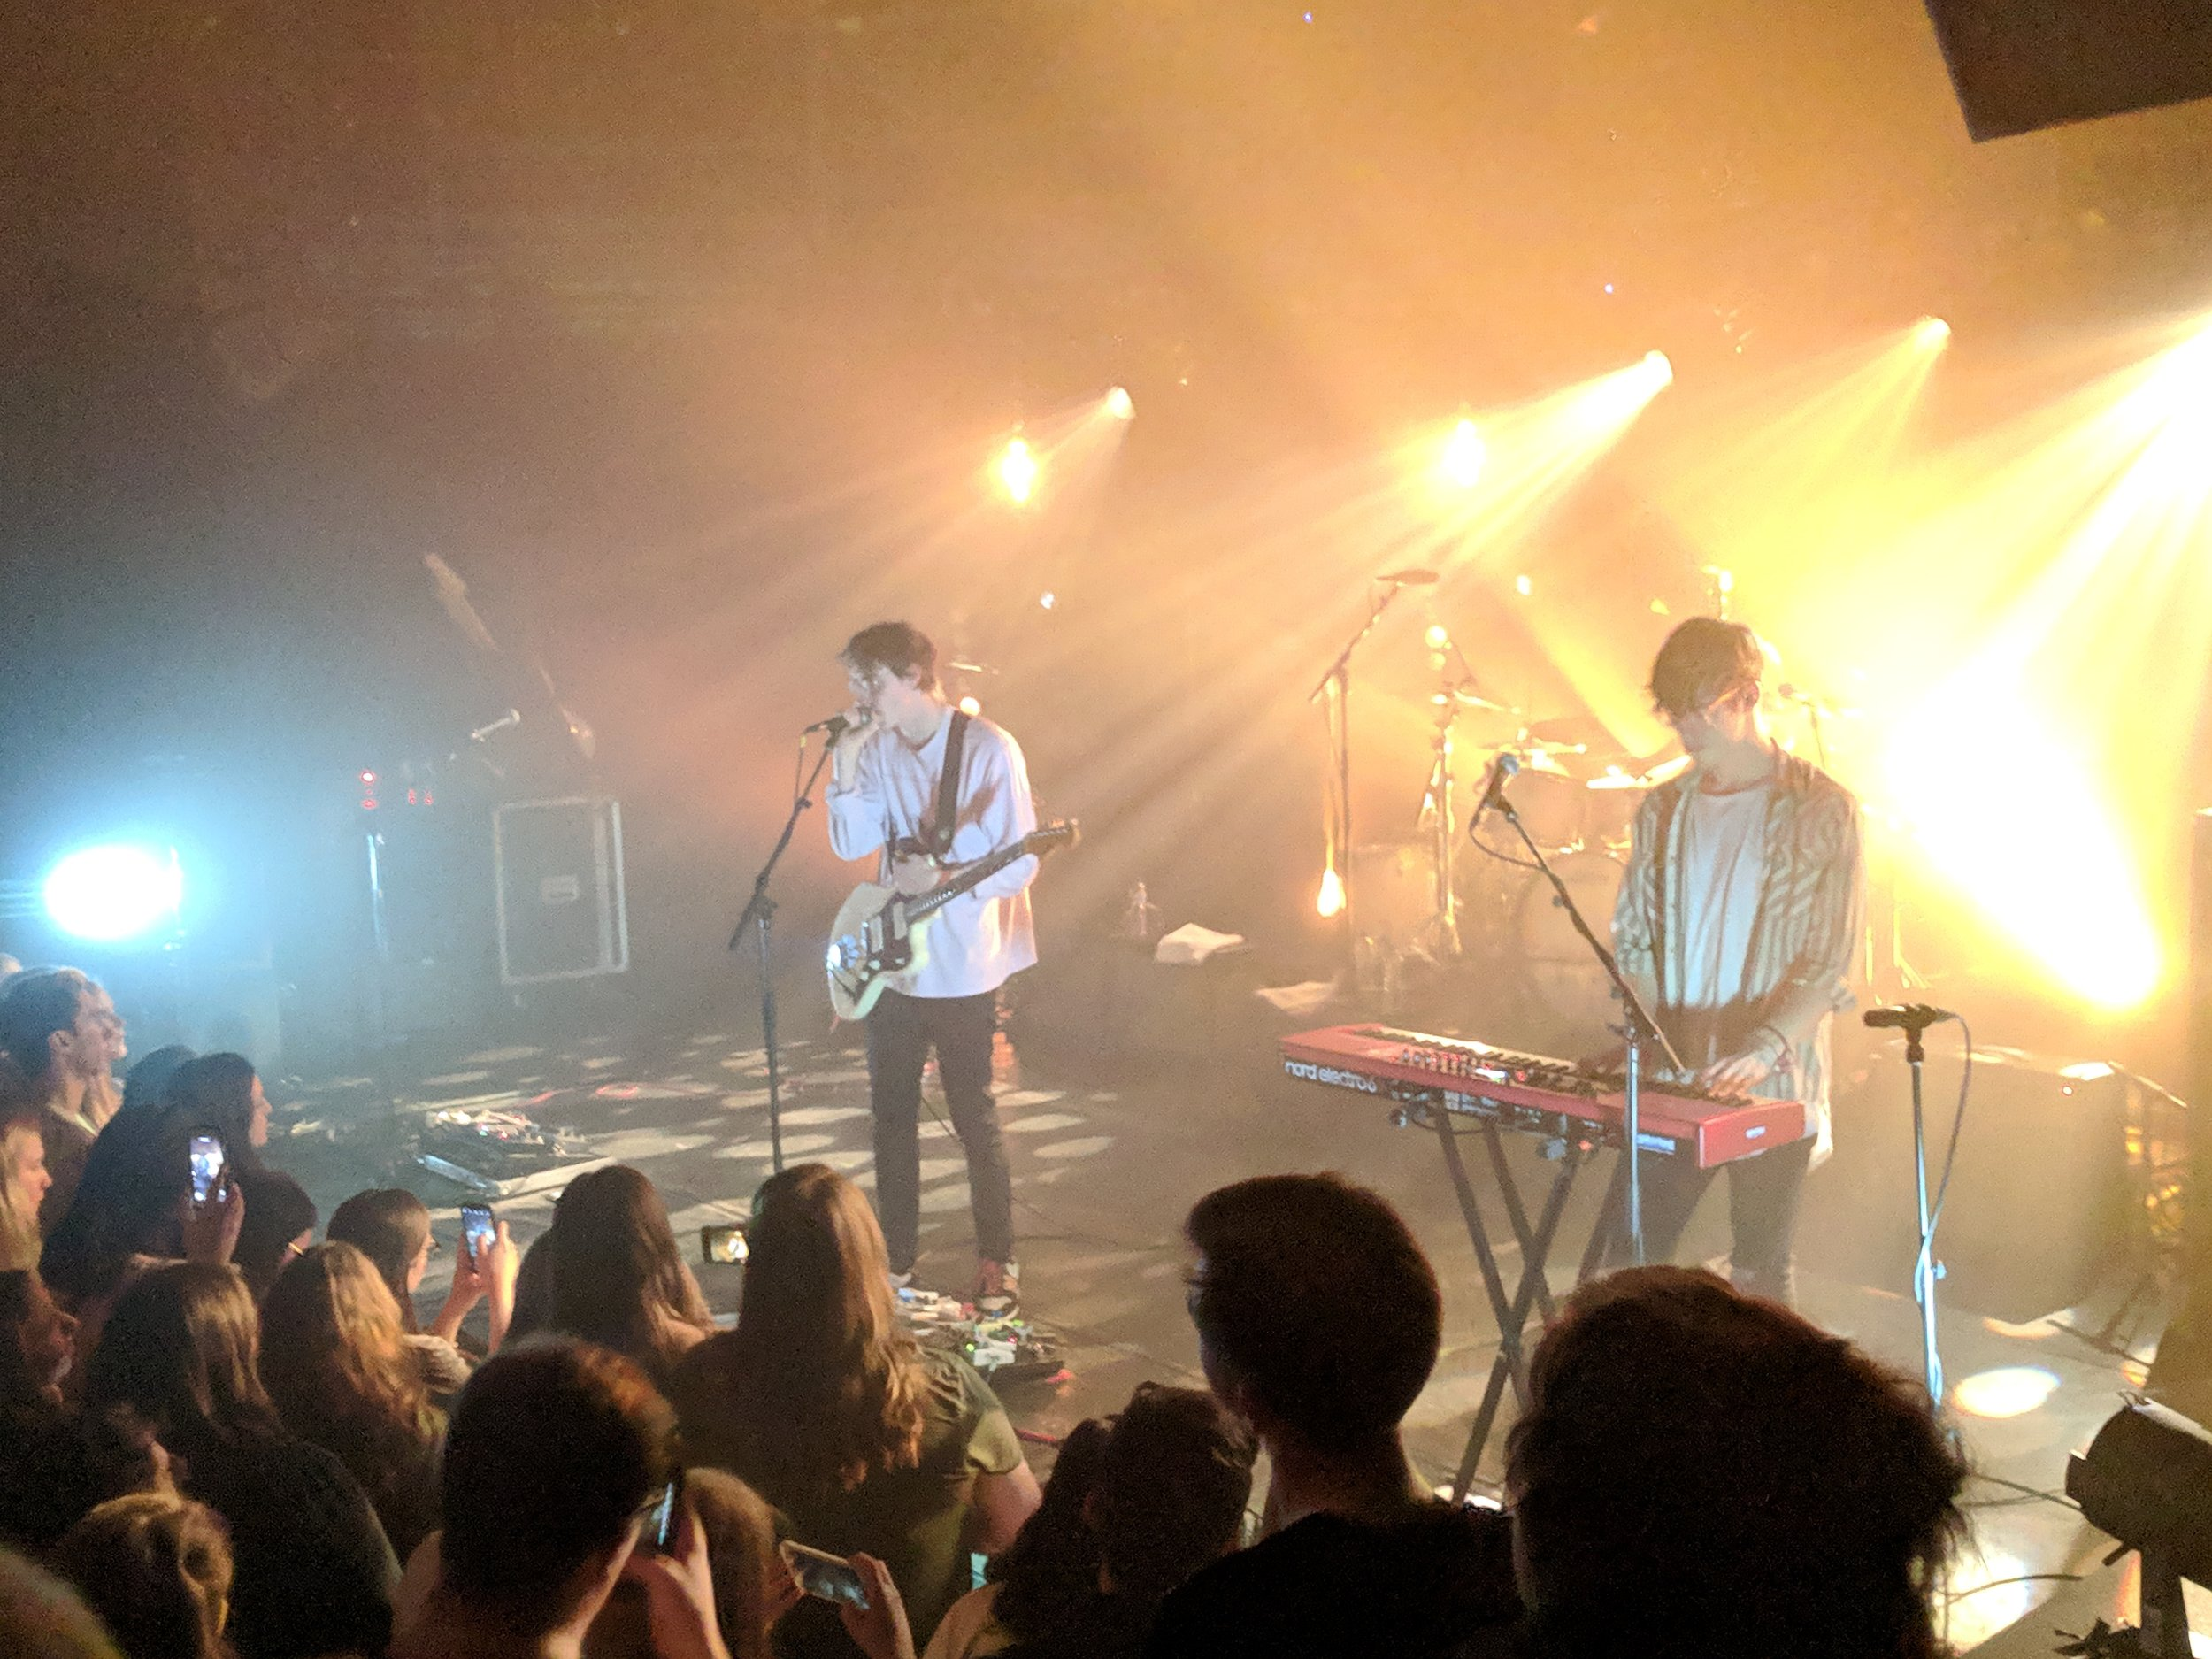 St. Paul band Hippo Campus at The Botanique. Feb 26, 2019.